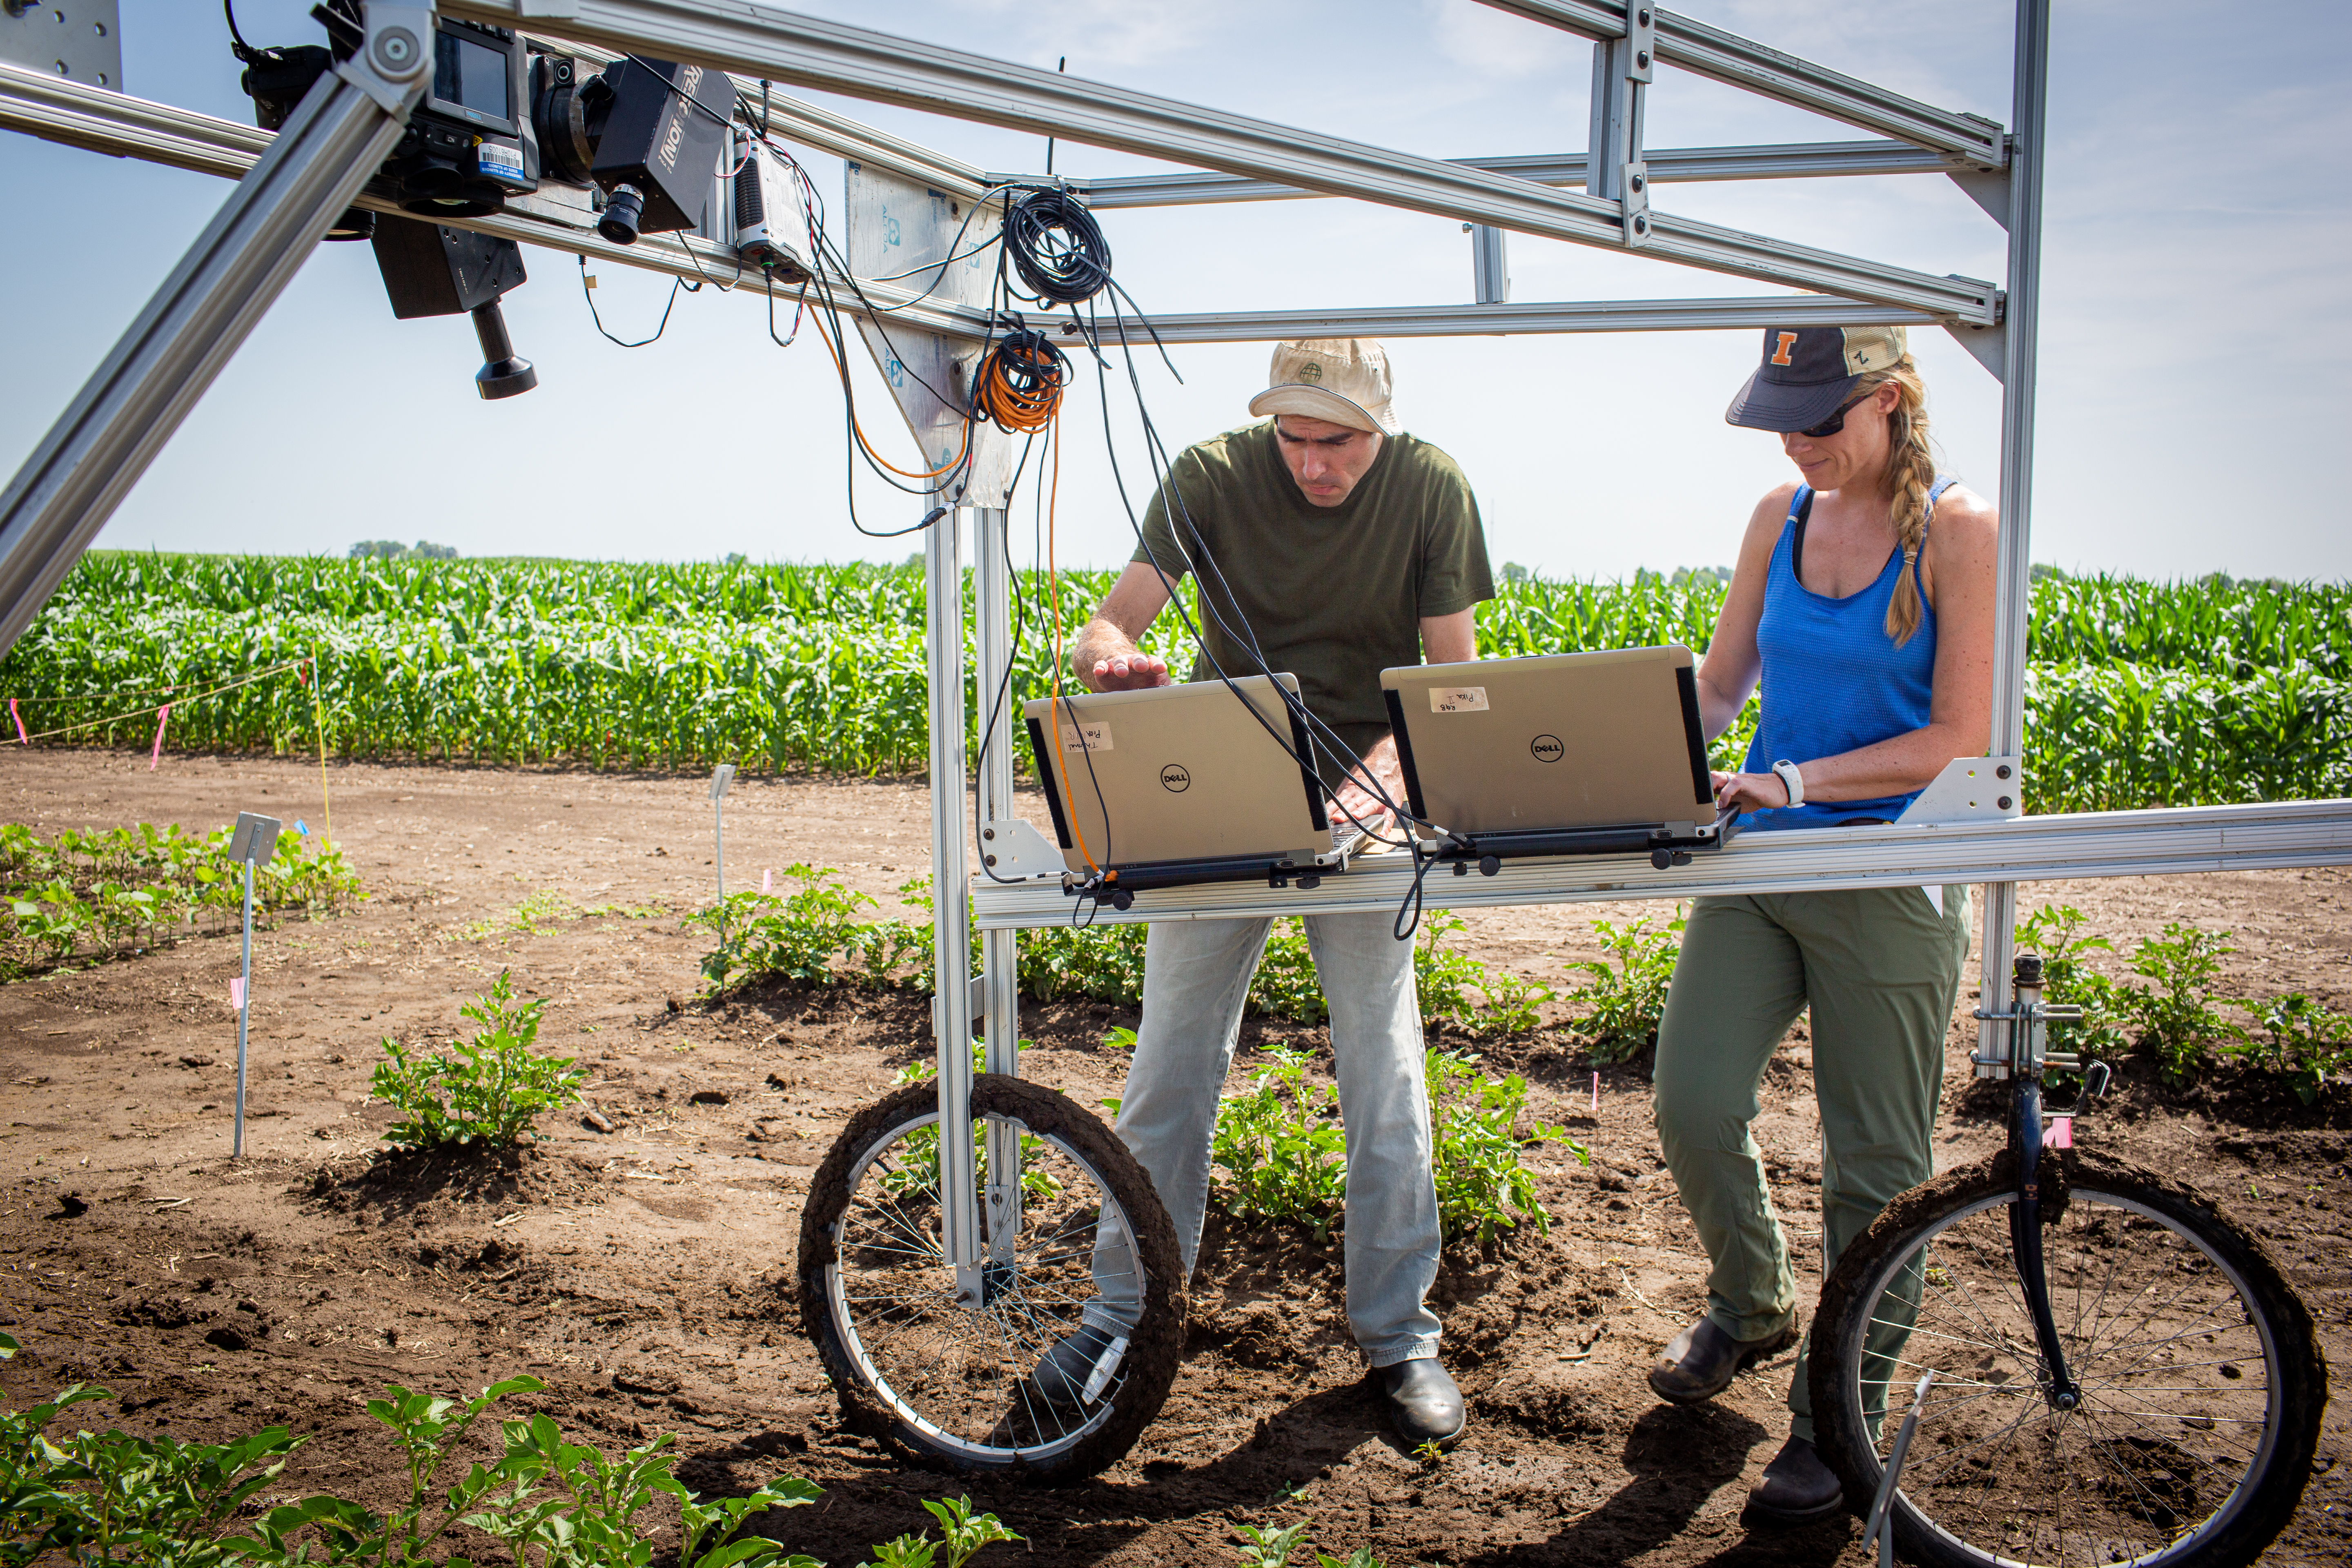 University of Illinois Research Technician Evan Dracup (left) and Postdoctoral Researcher Katherine Meacham-Hensold (right) use hyperspectral cameras to screen entire research plots for high-yielding photosynthesis traits. Two recent publications are making this technology available to more scientists.